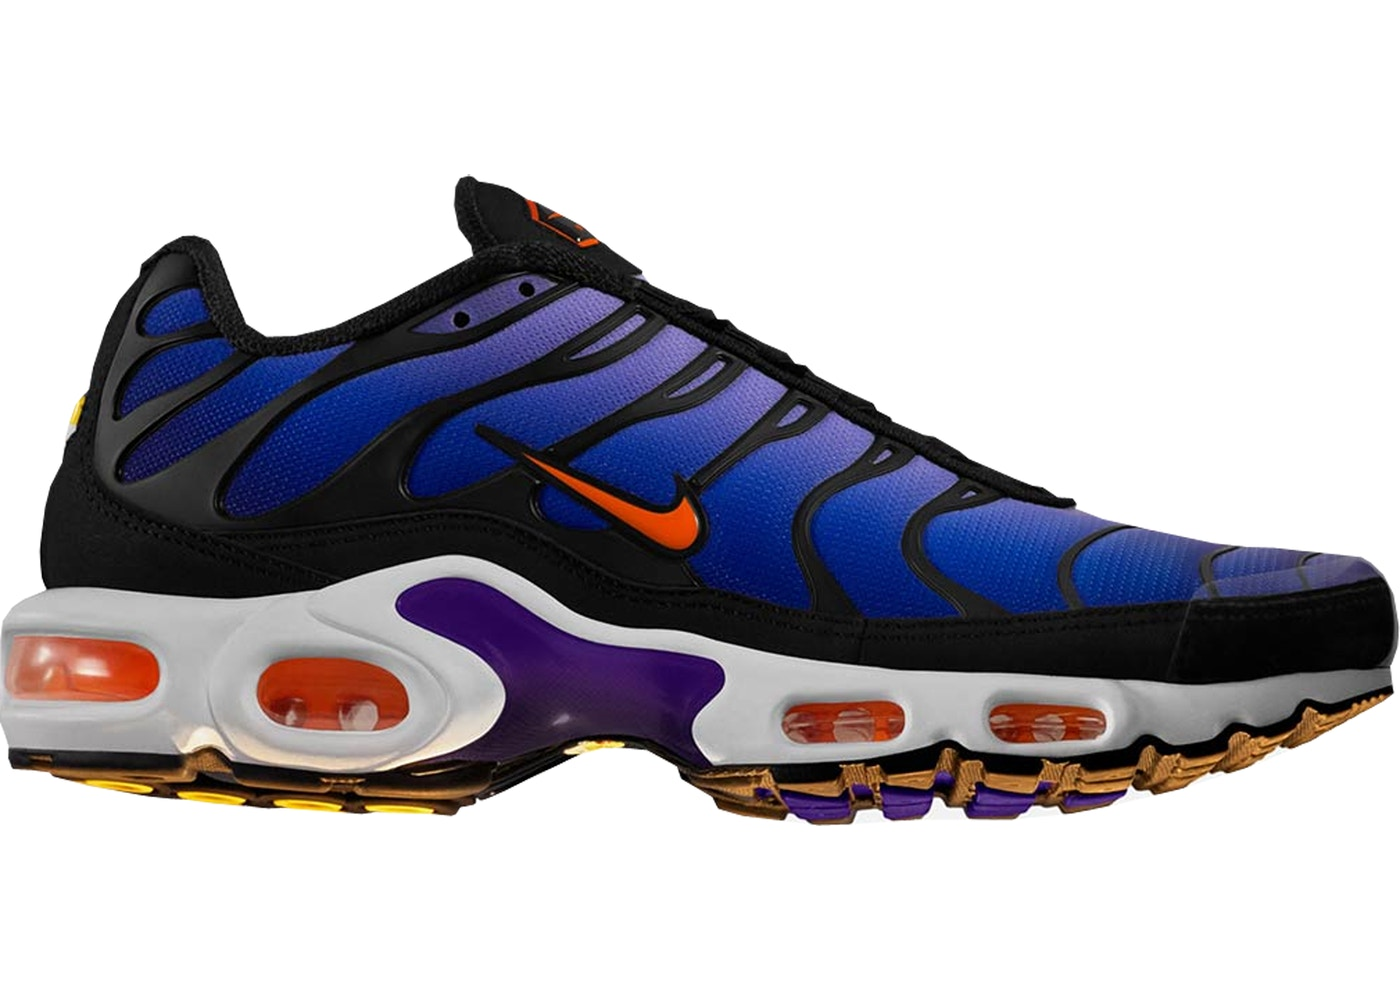 Air Max Plus OG Voltage Purple - BQ4629-002